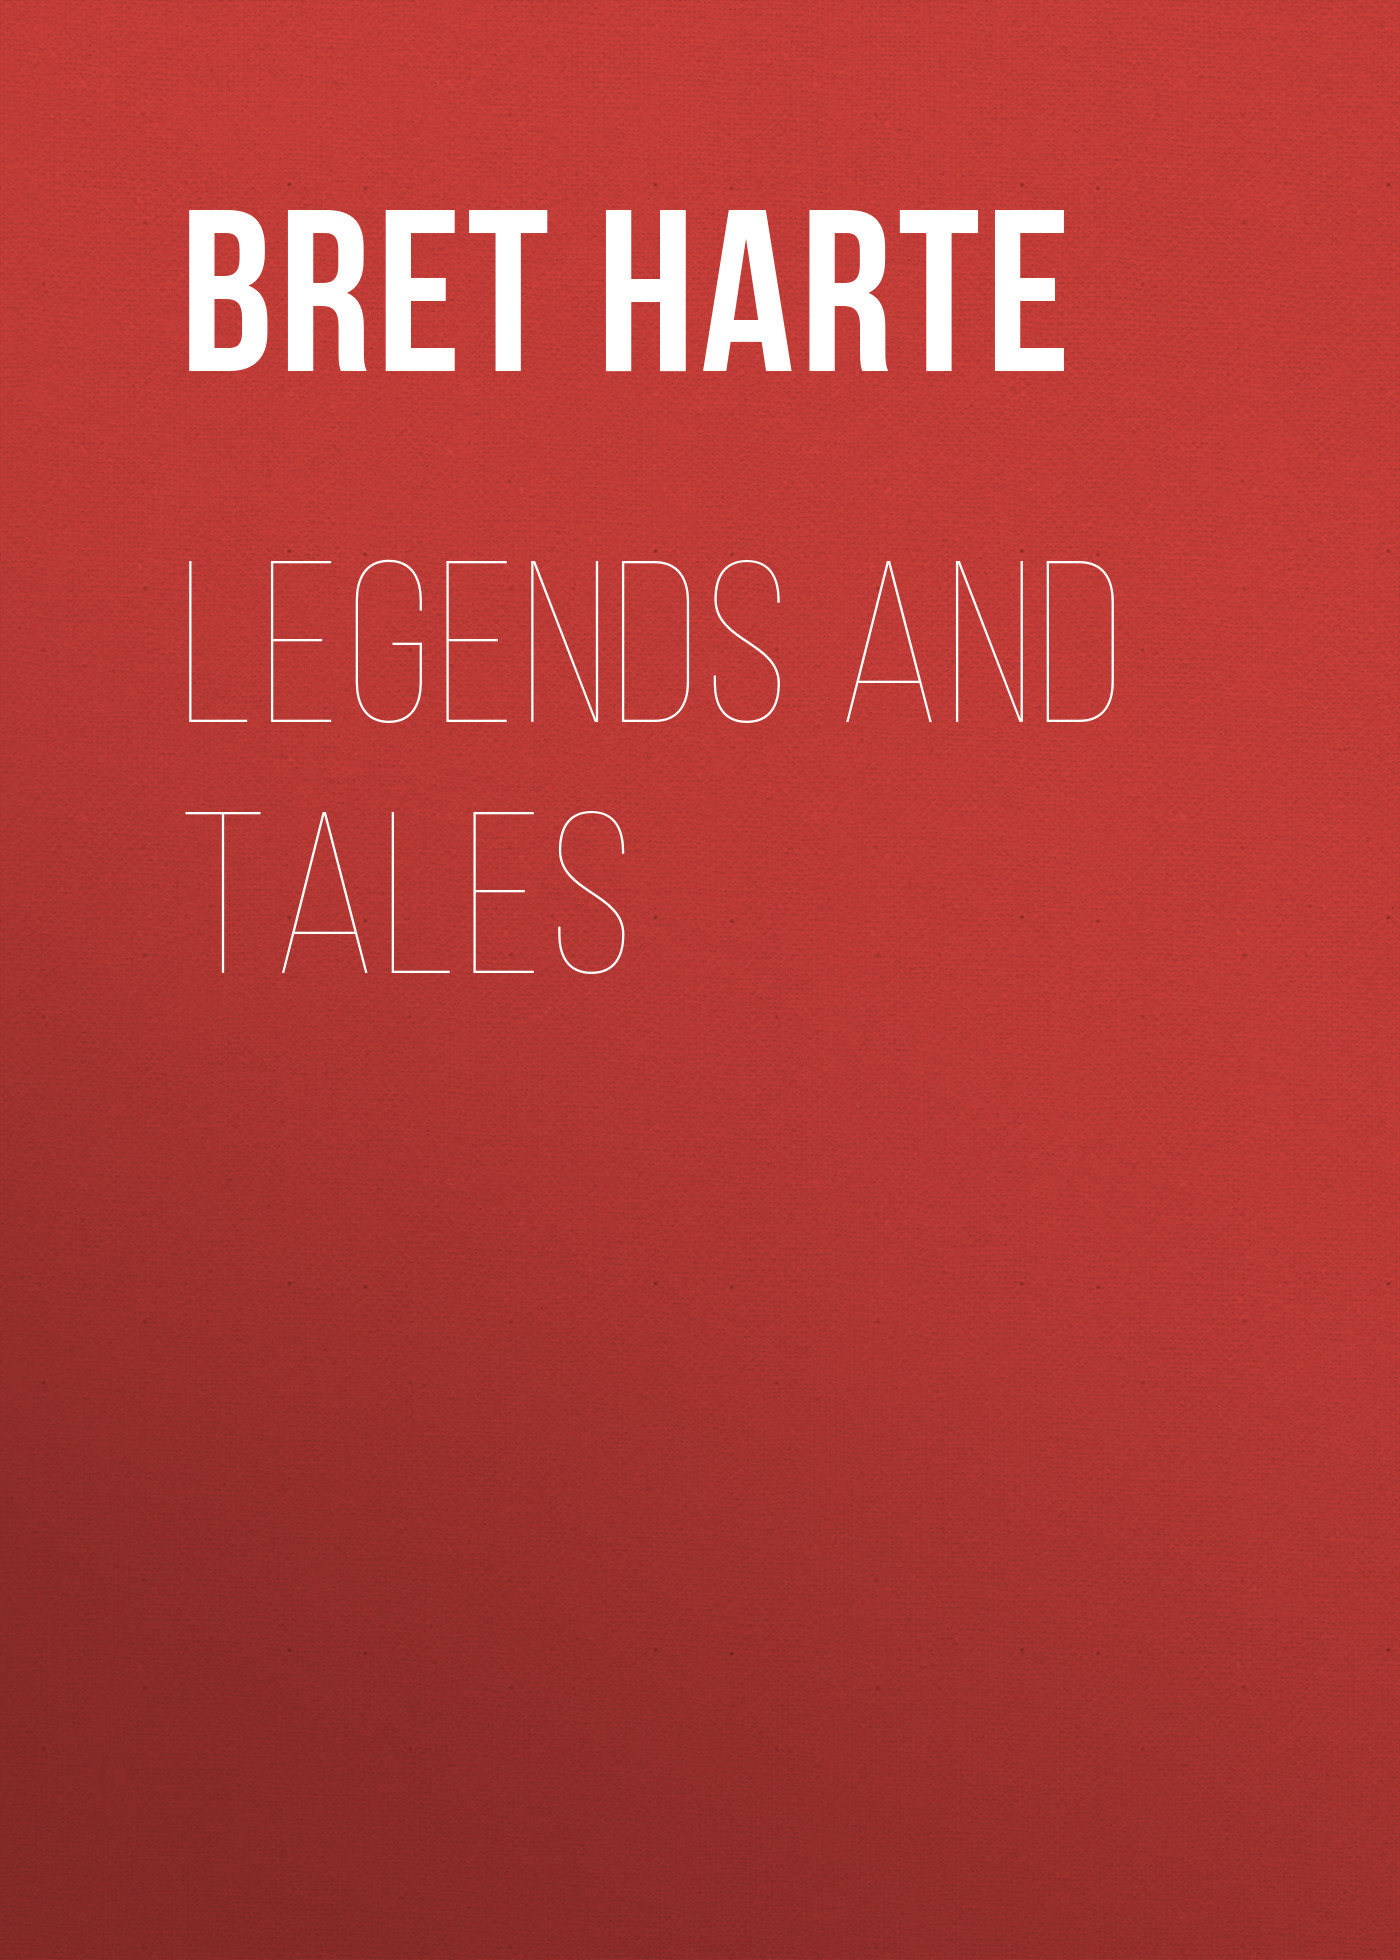 Bret Harte Legends and Tales bret harte trent s trust and other stories